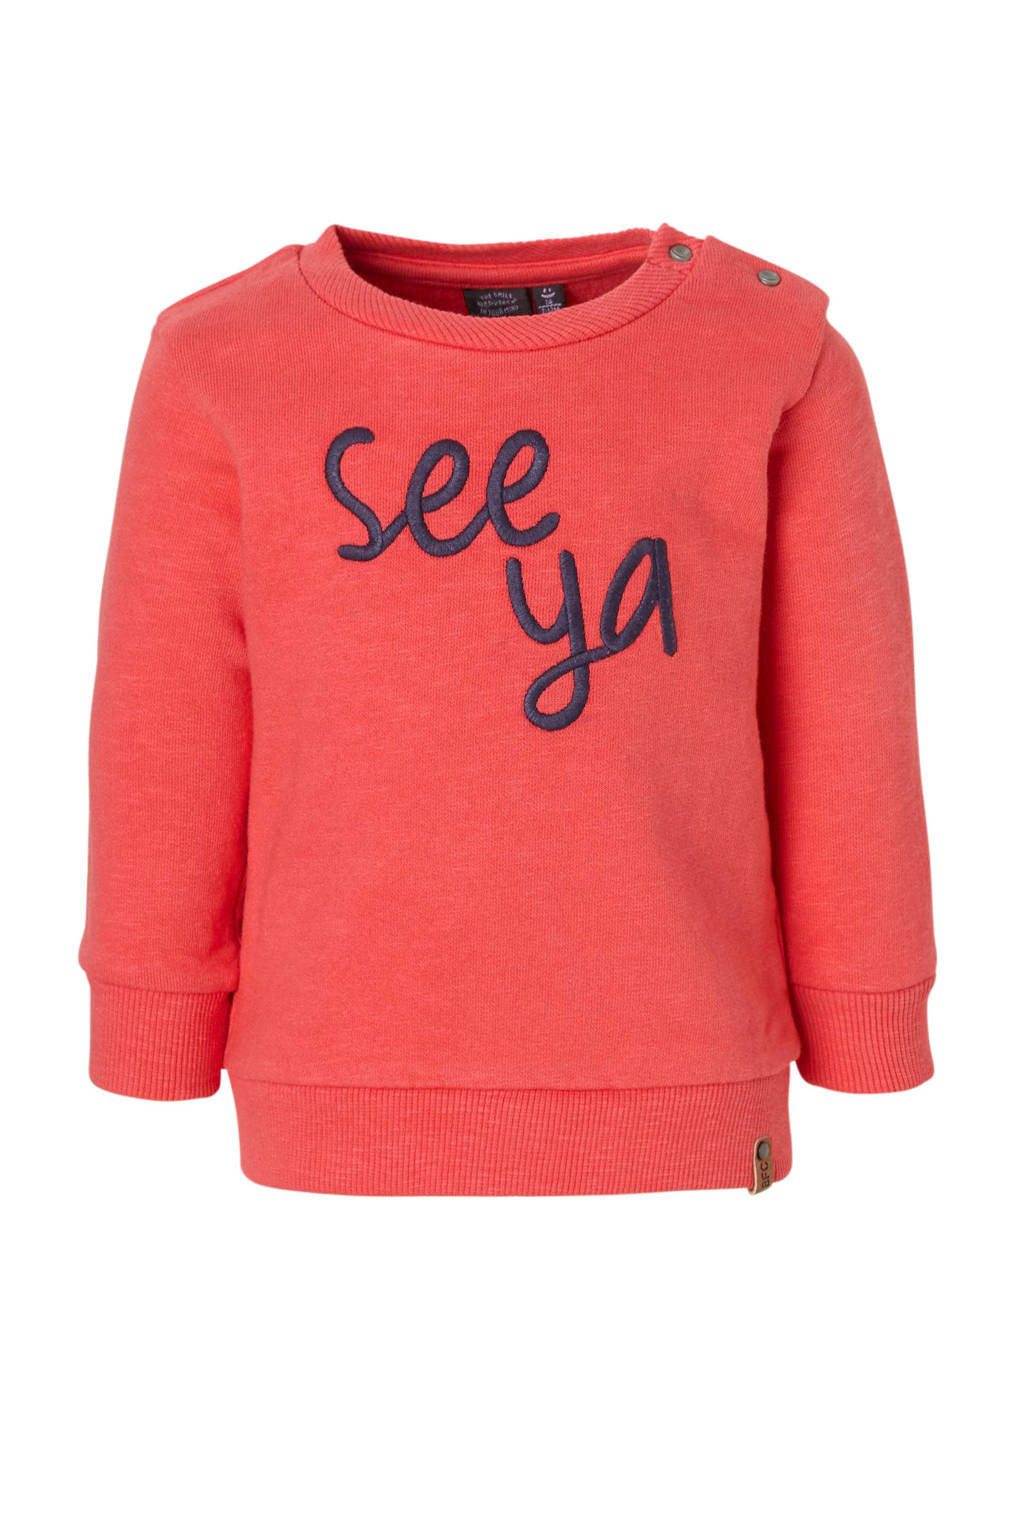 Babyface sweater met tekst rood, Oudrood